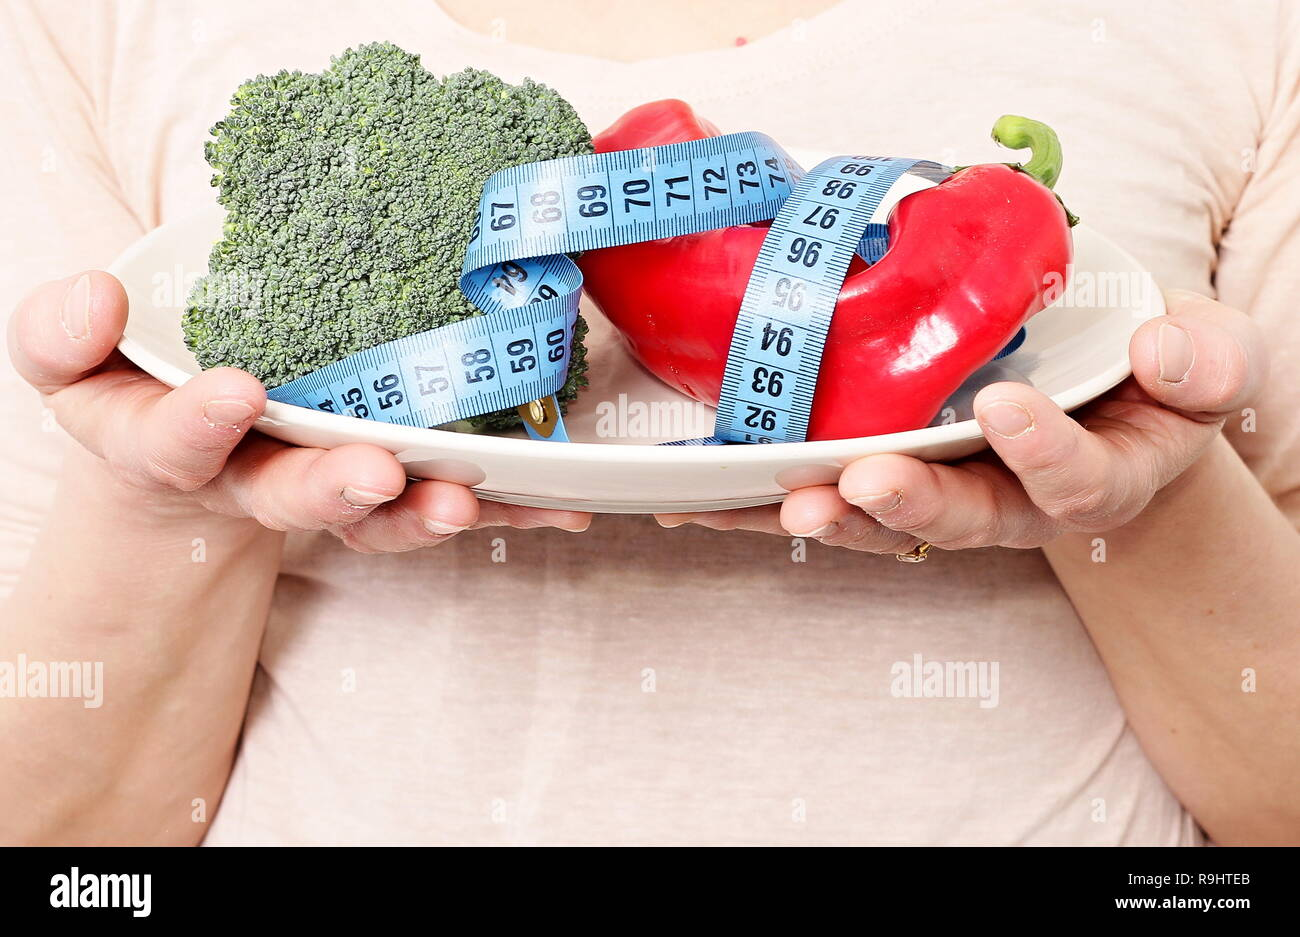 Awe Inspiring Healthy Vegetables On The Plate With Tape Measure Download Free Architecture Designs Scobabritishbridgeorg